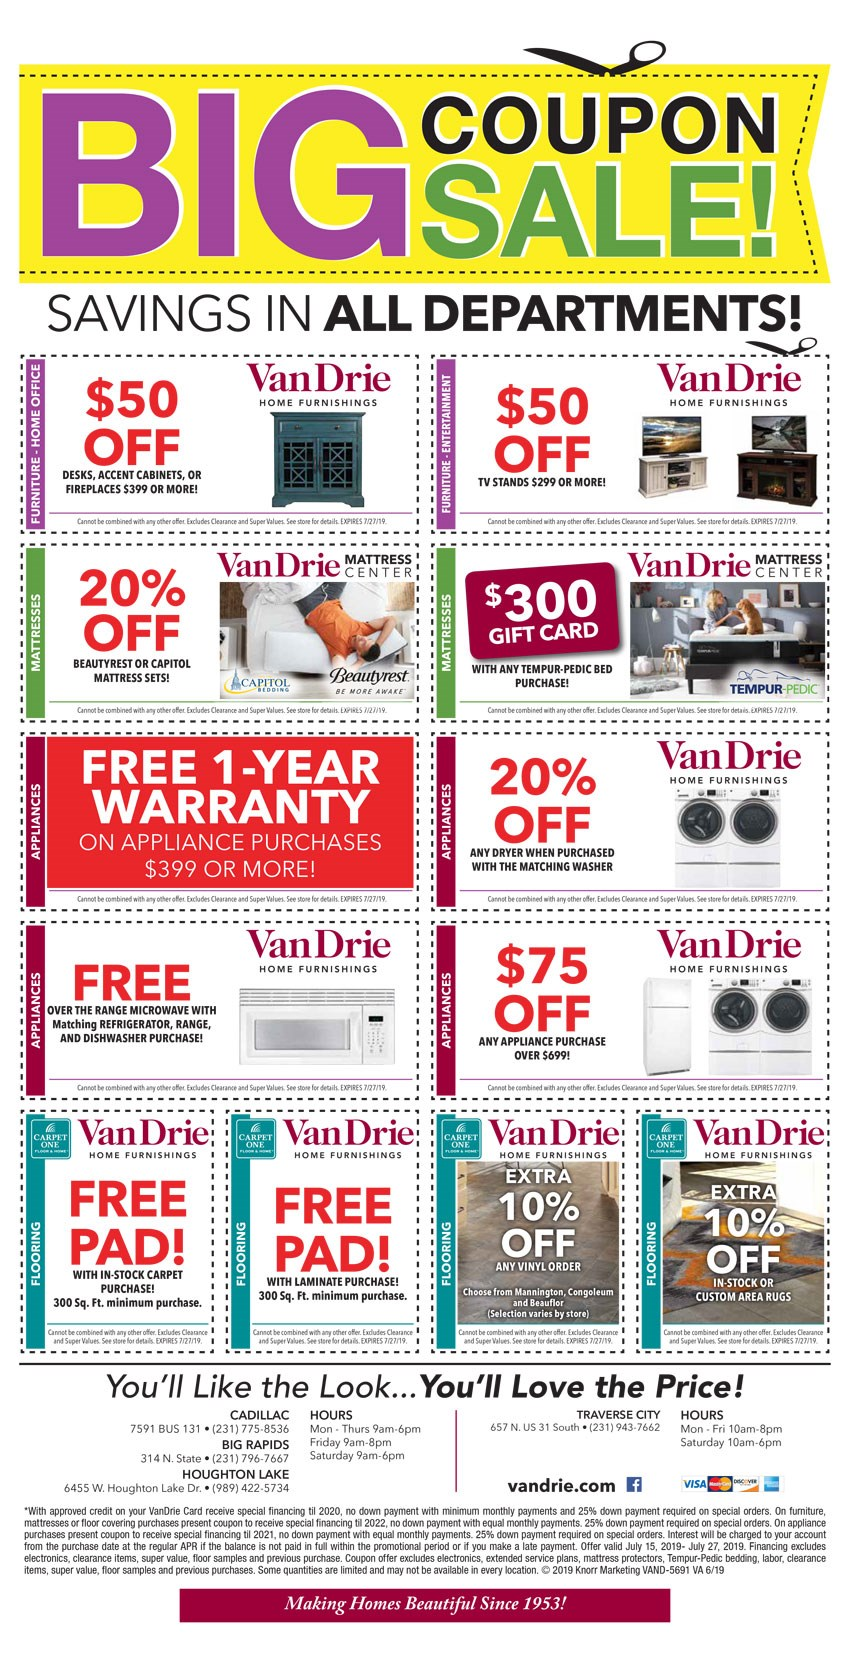 Coupon Sale Page 2